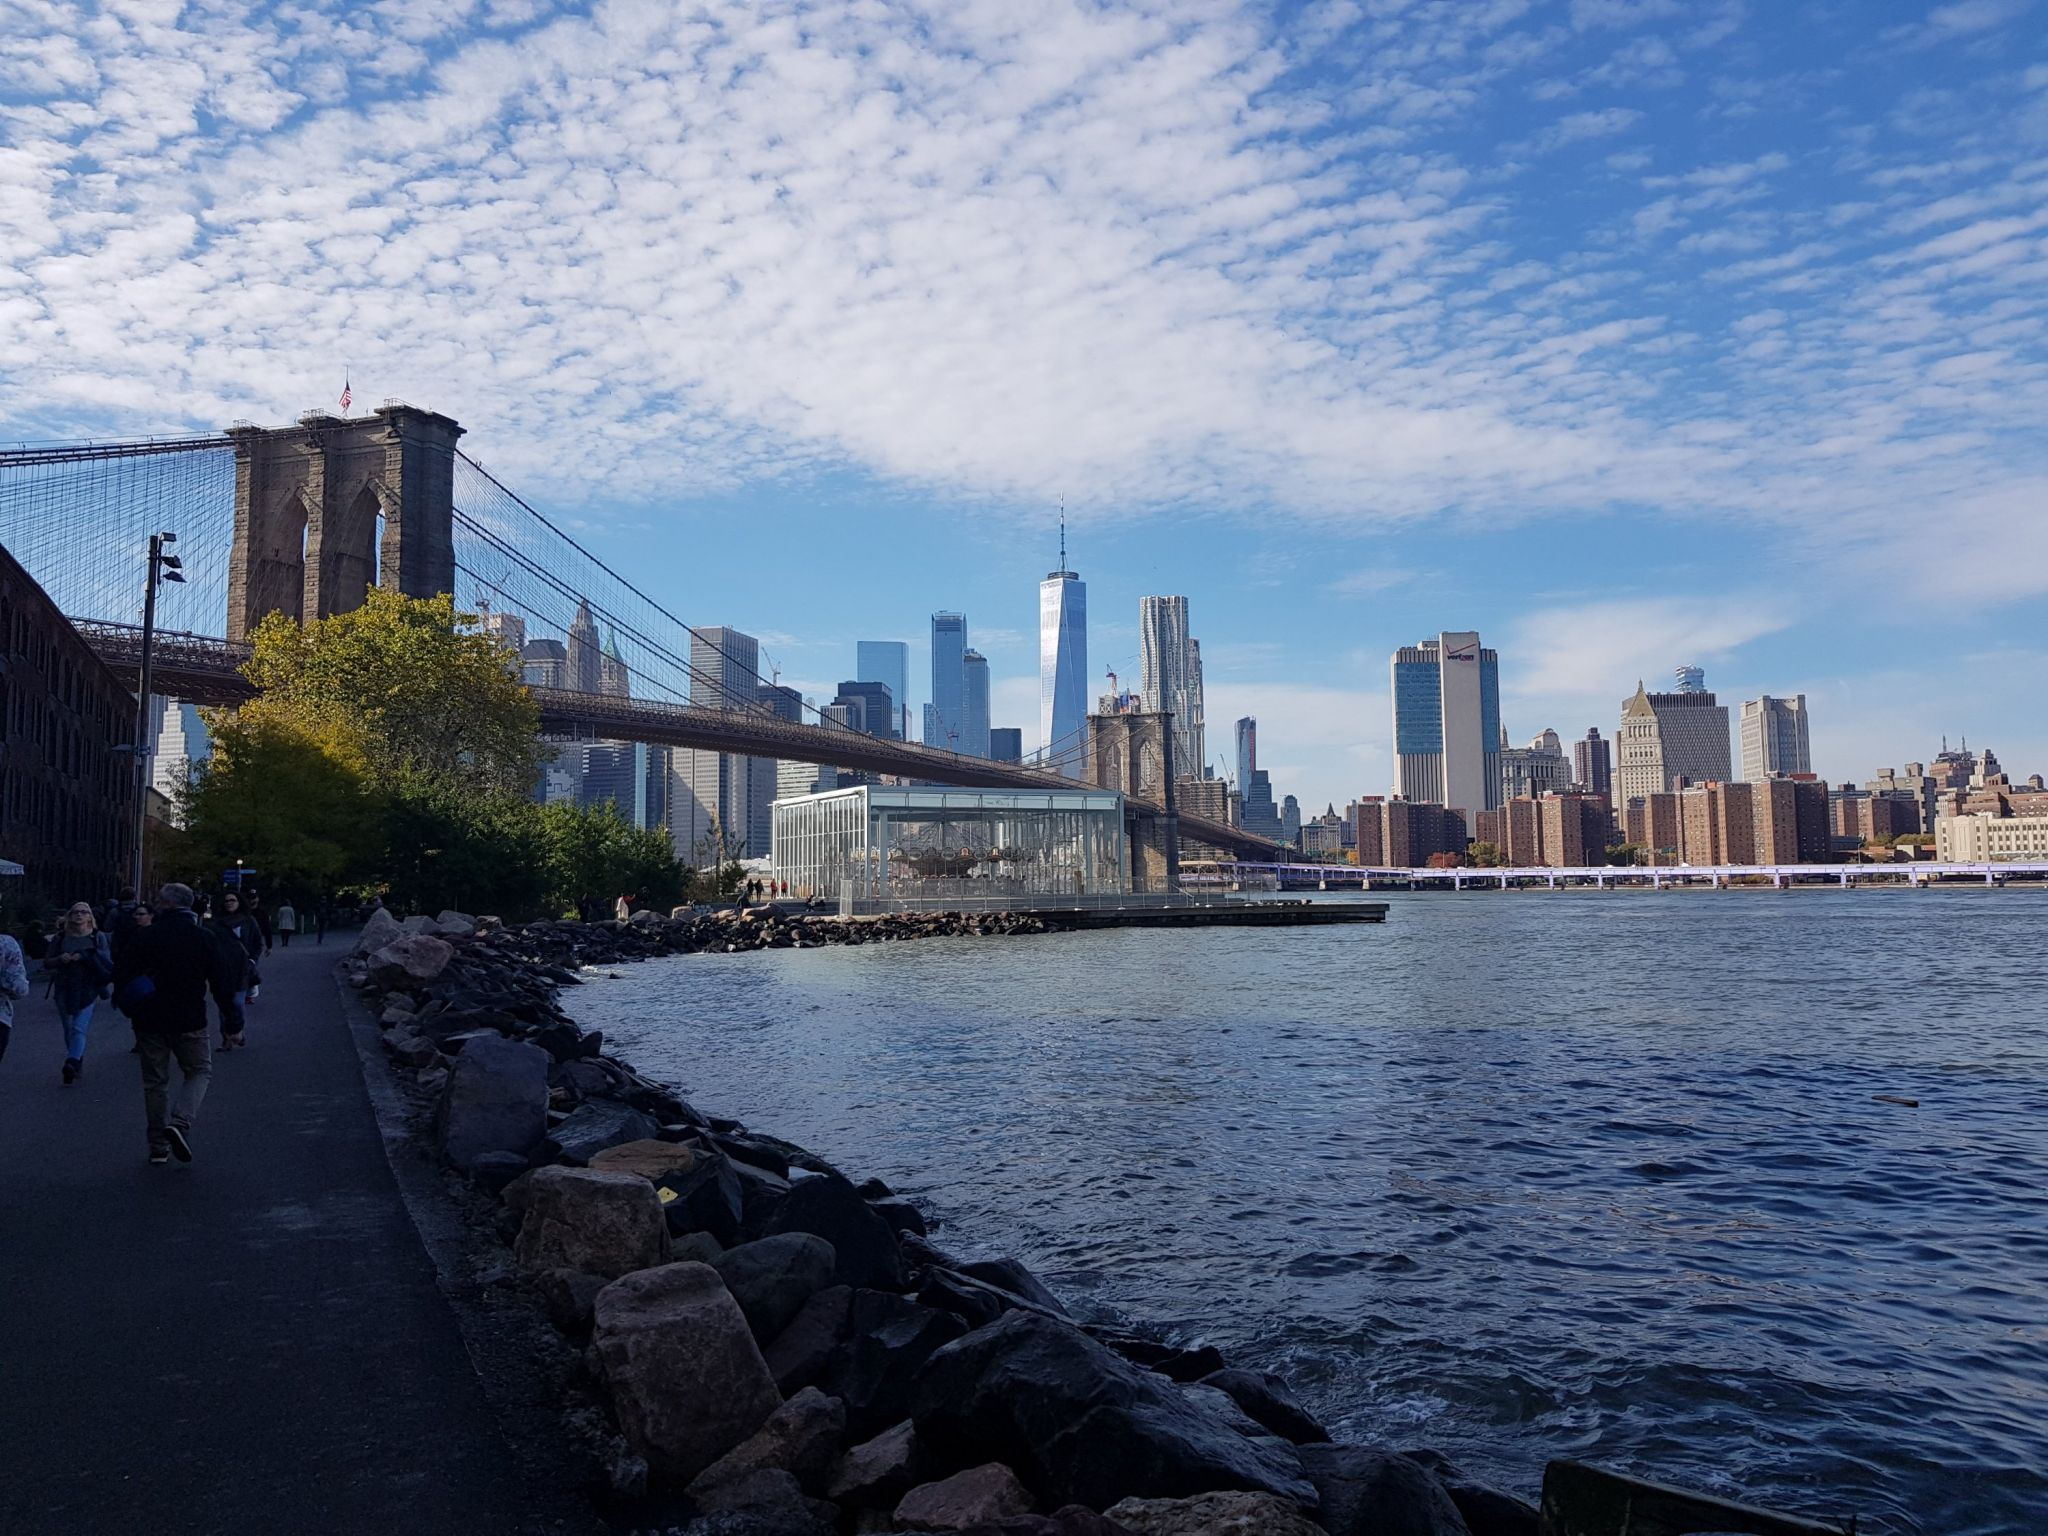 dumbo, Brooklyn, sightseeing, live lavishly, New York